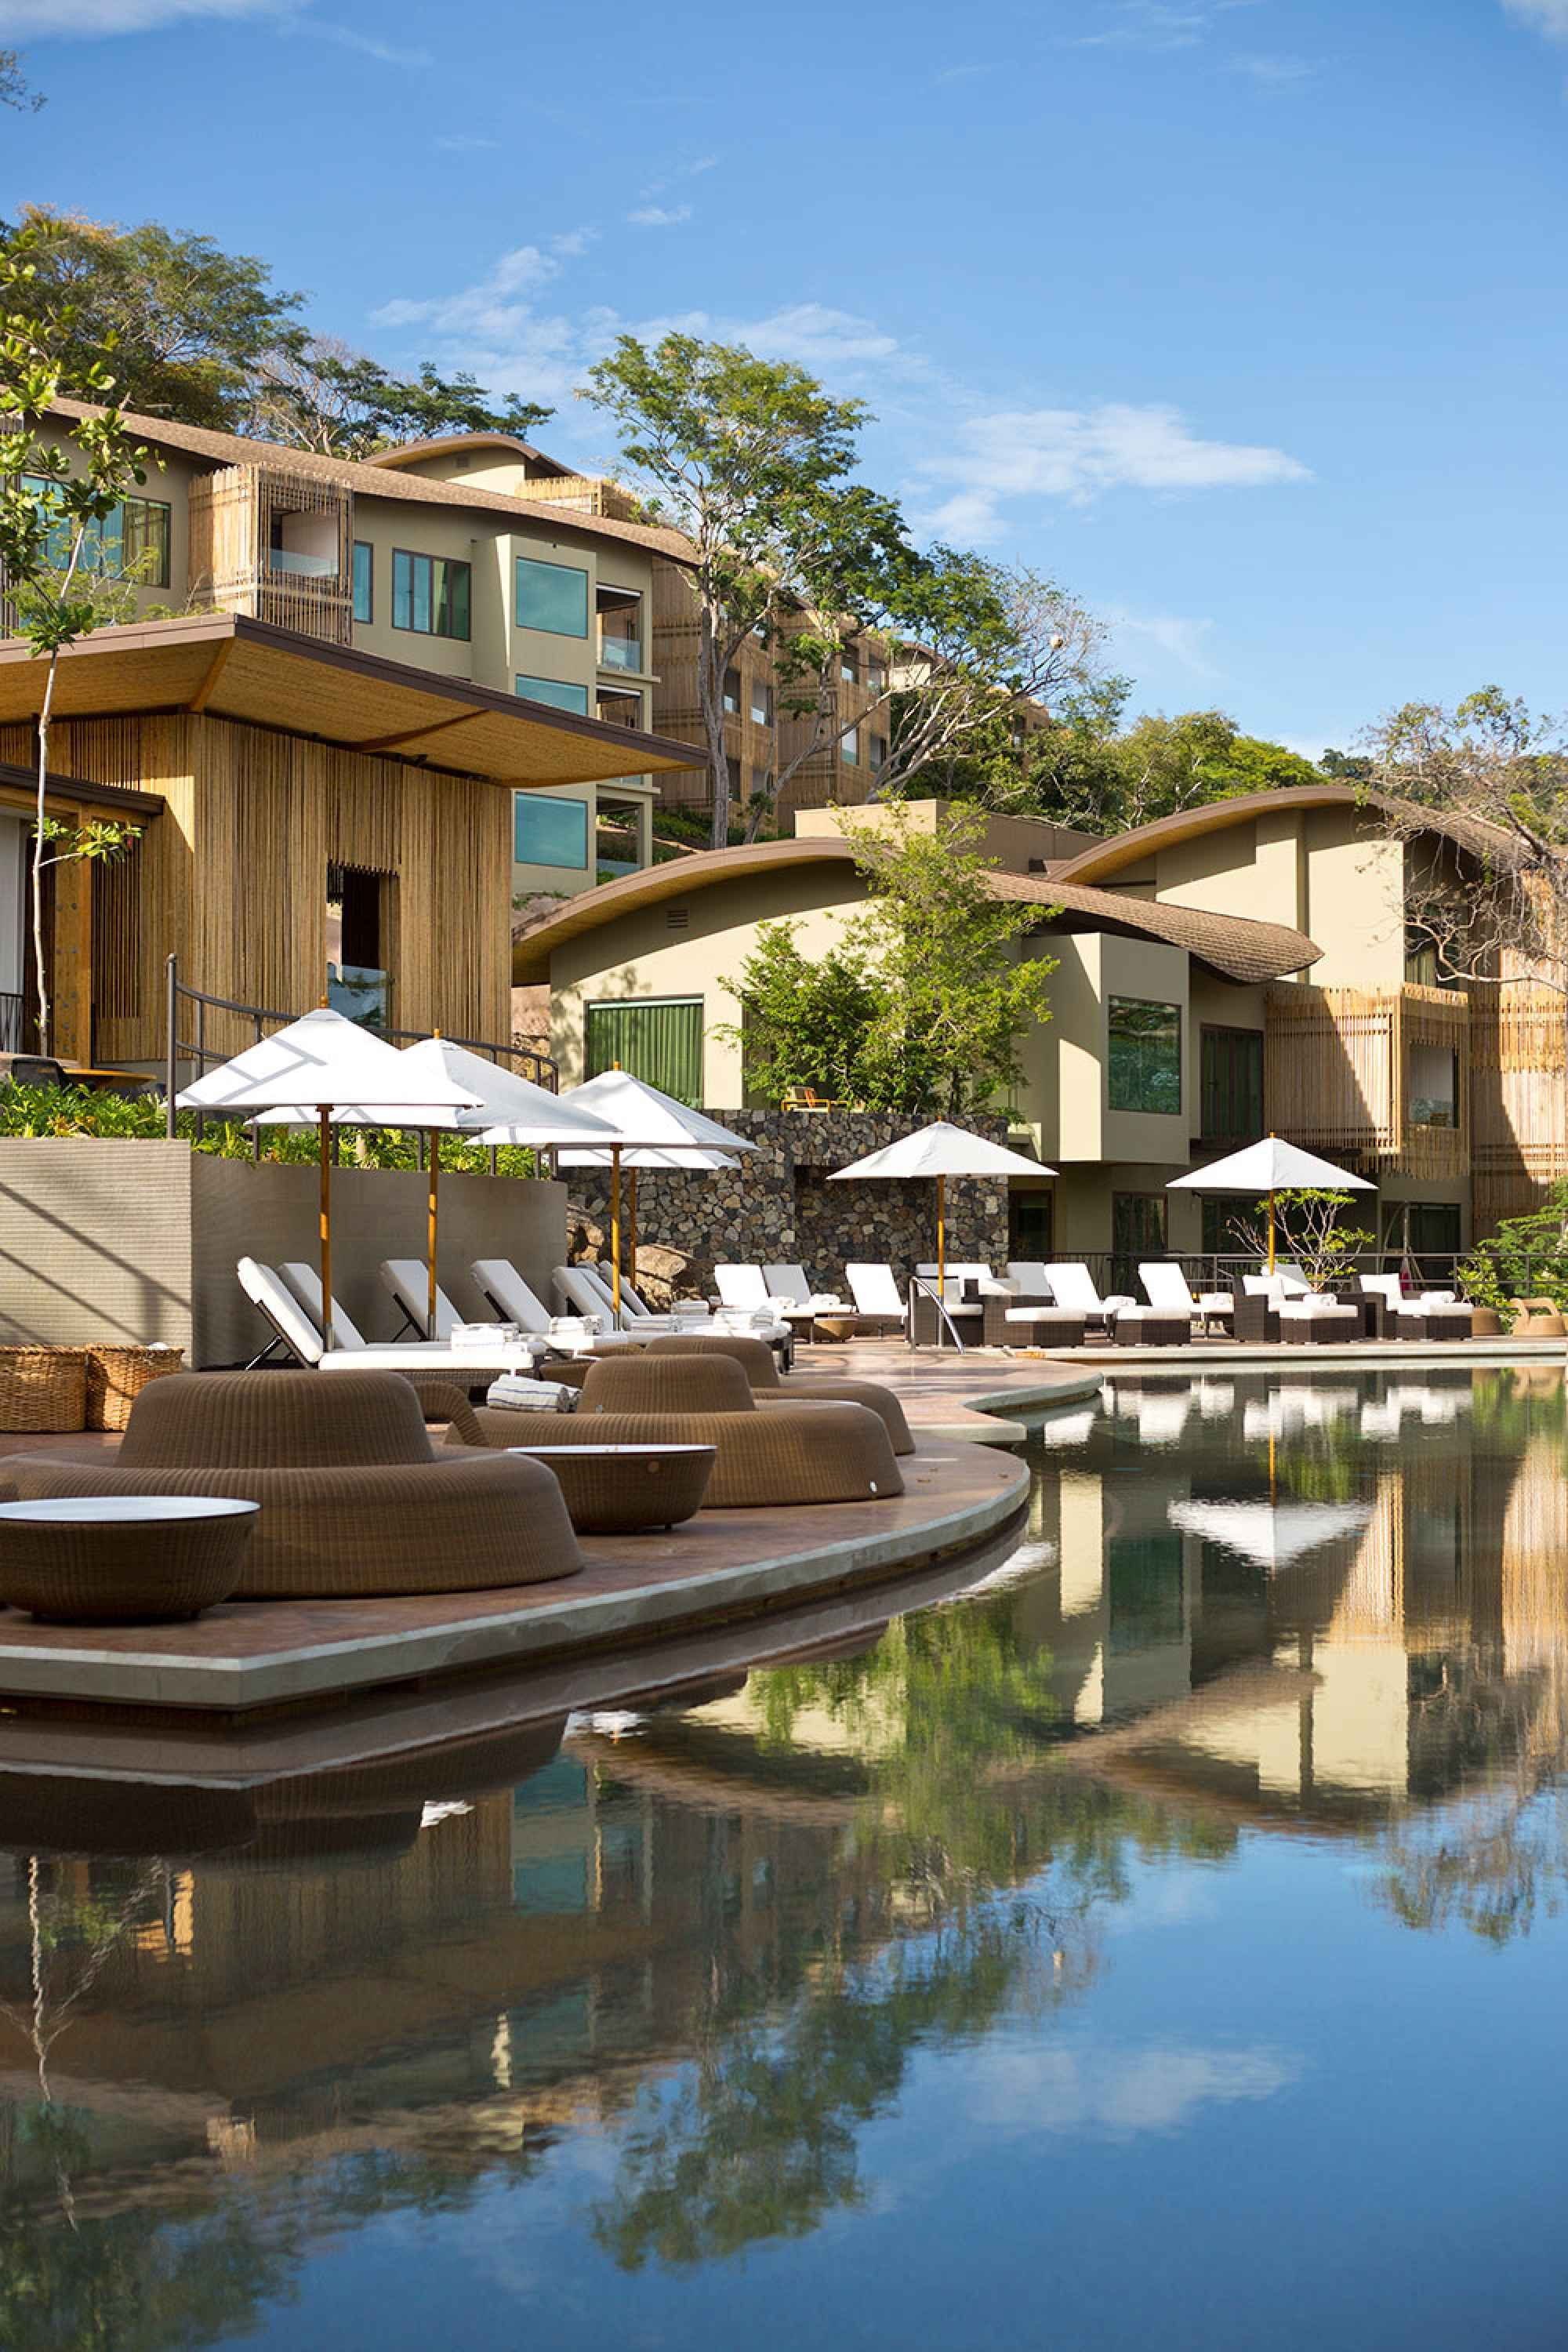 Brand New Wedding Venues | Where to Get Married | Destination Wedding Ideas and Resorts | Andaz Peninsula Papagayo